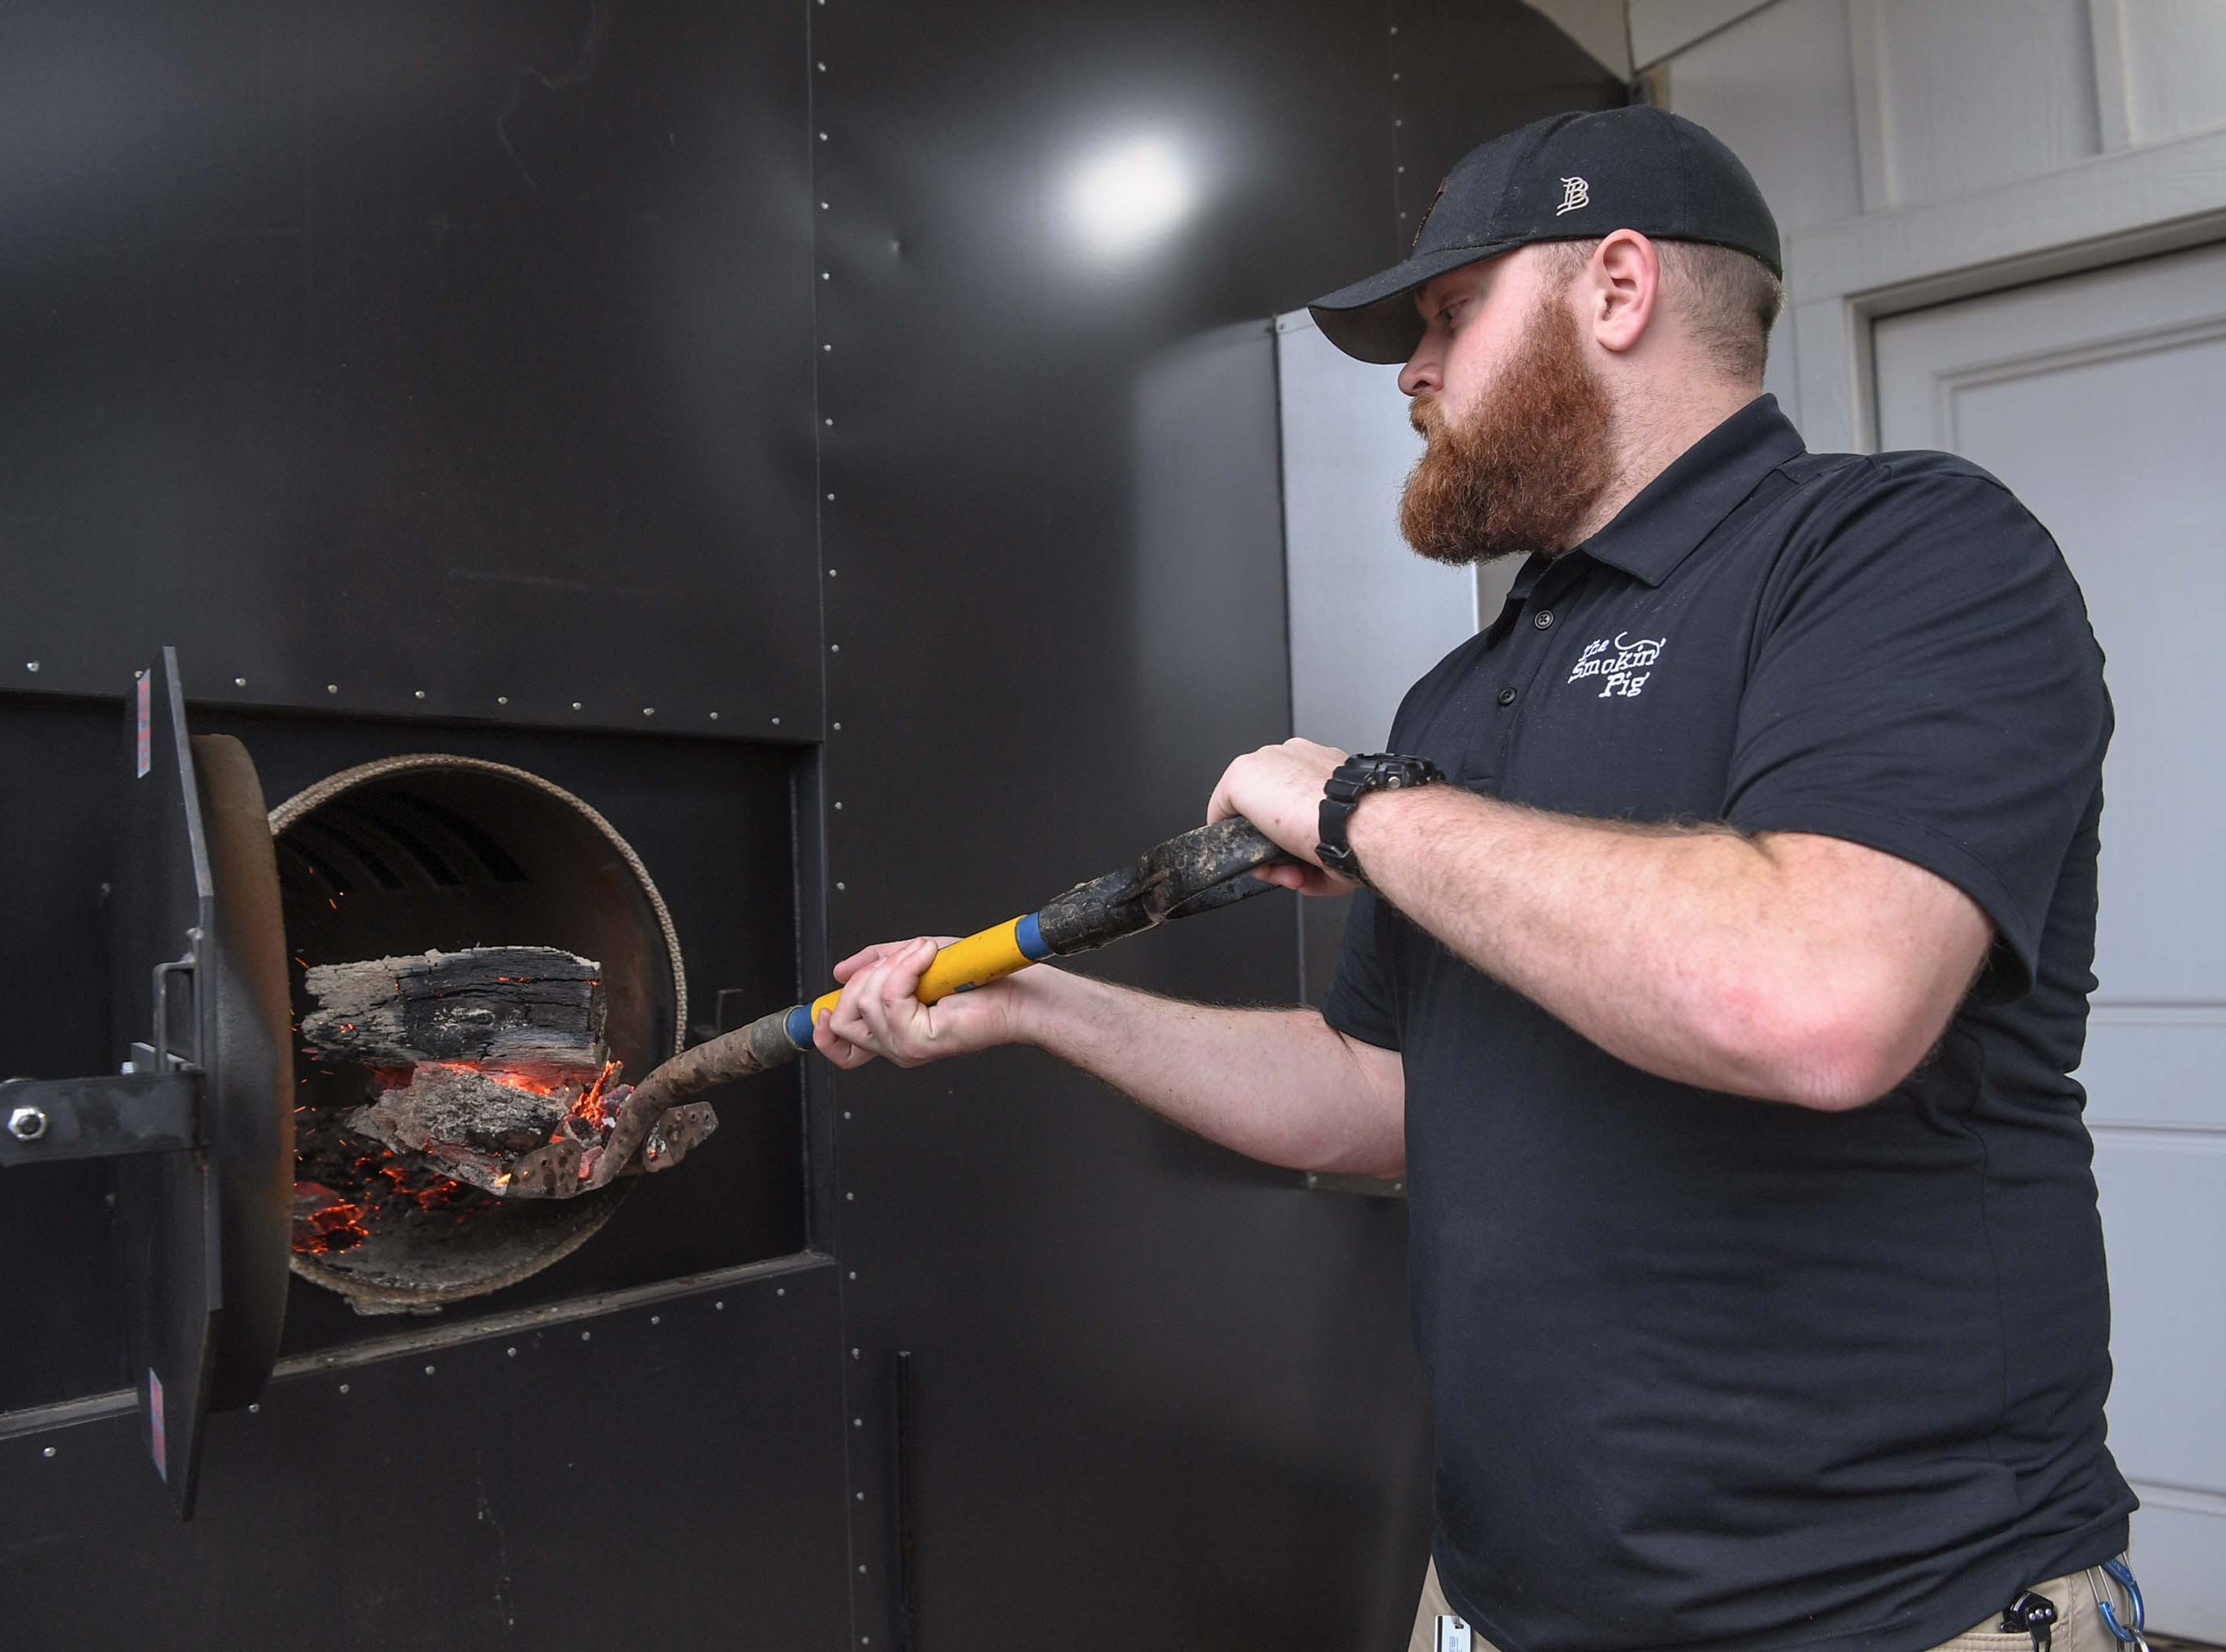 Chris McCroskey checks on the firewood in the smoker cooking brisket at The Smokin' Pig on Evergreen Road in Anderson. The new location opened February 28, 2019, one of four locations including Pendleton, Williamston, and Easley.